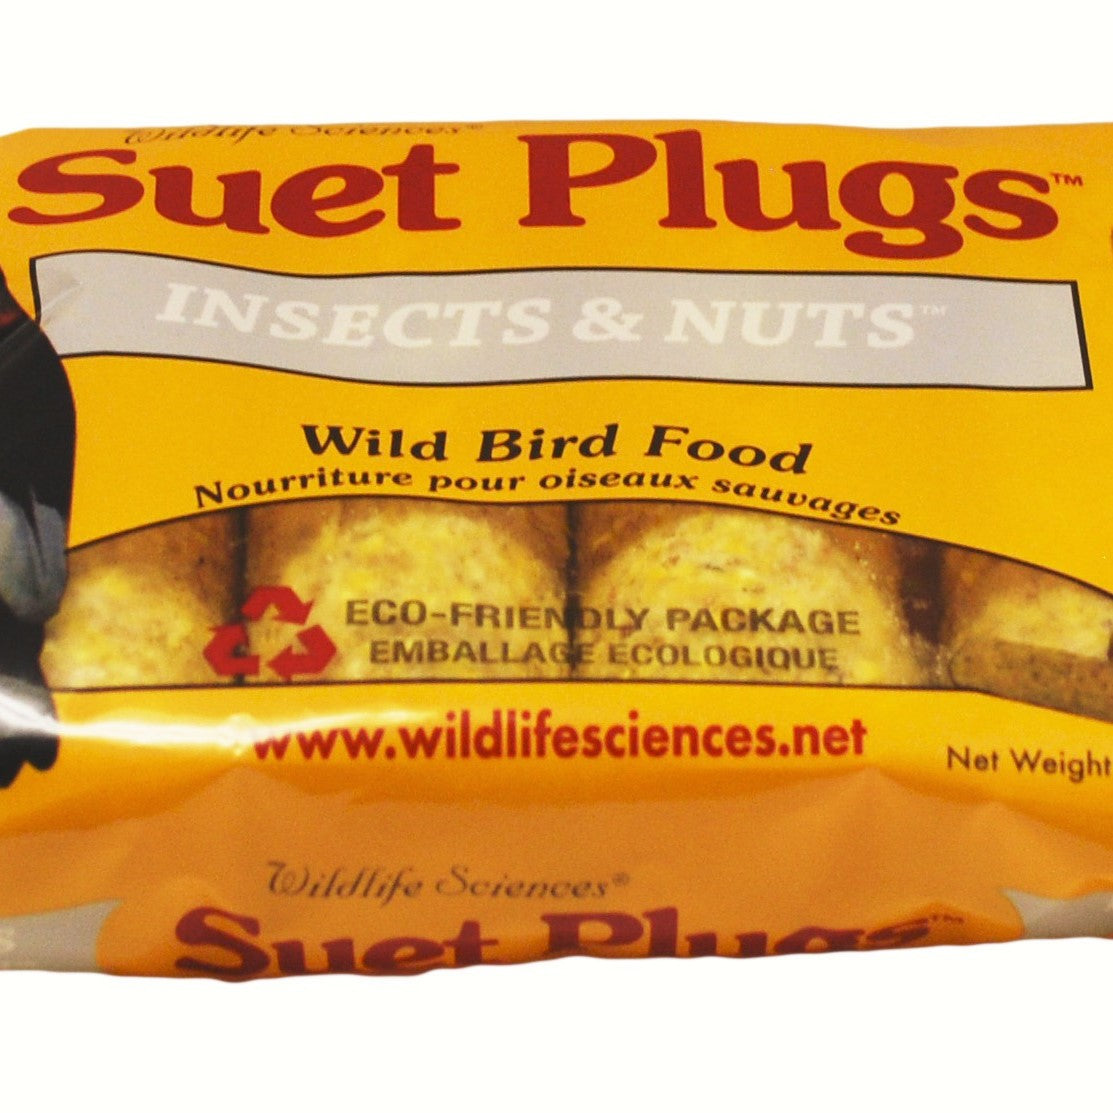 Insects & Nuts Suet Plugs 12 OZ